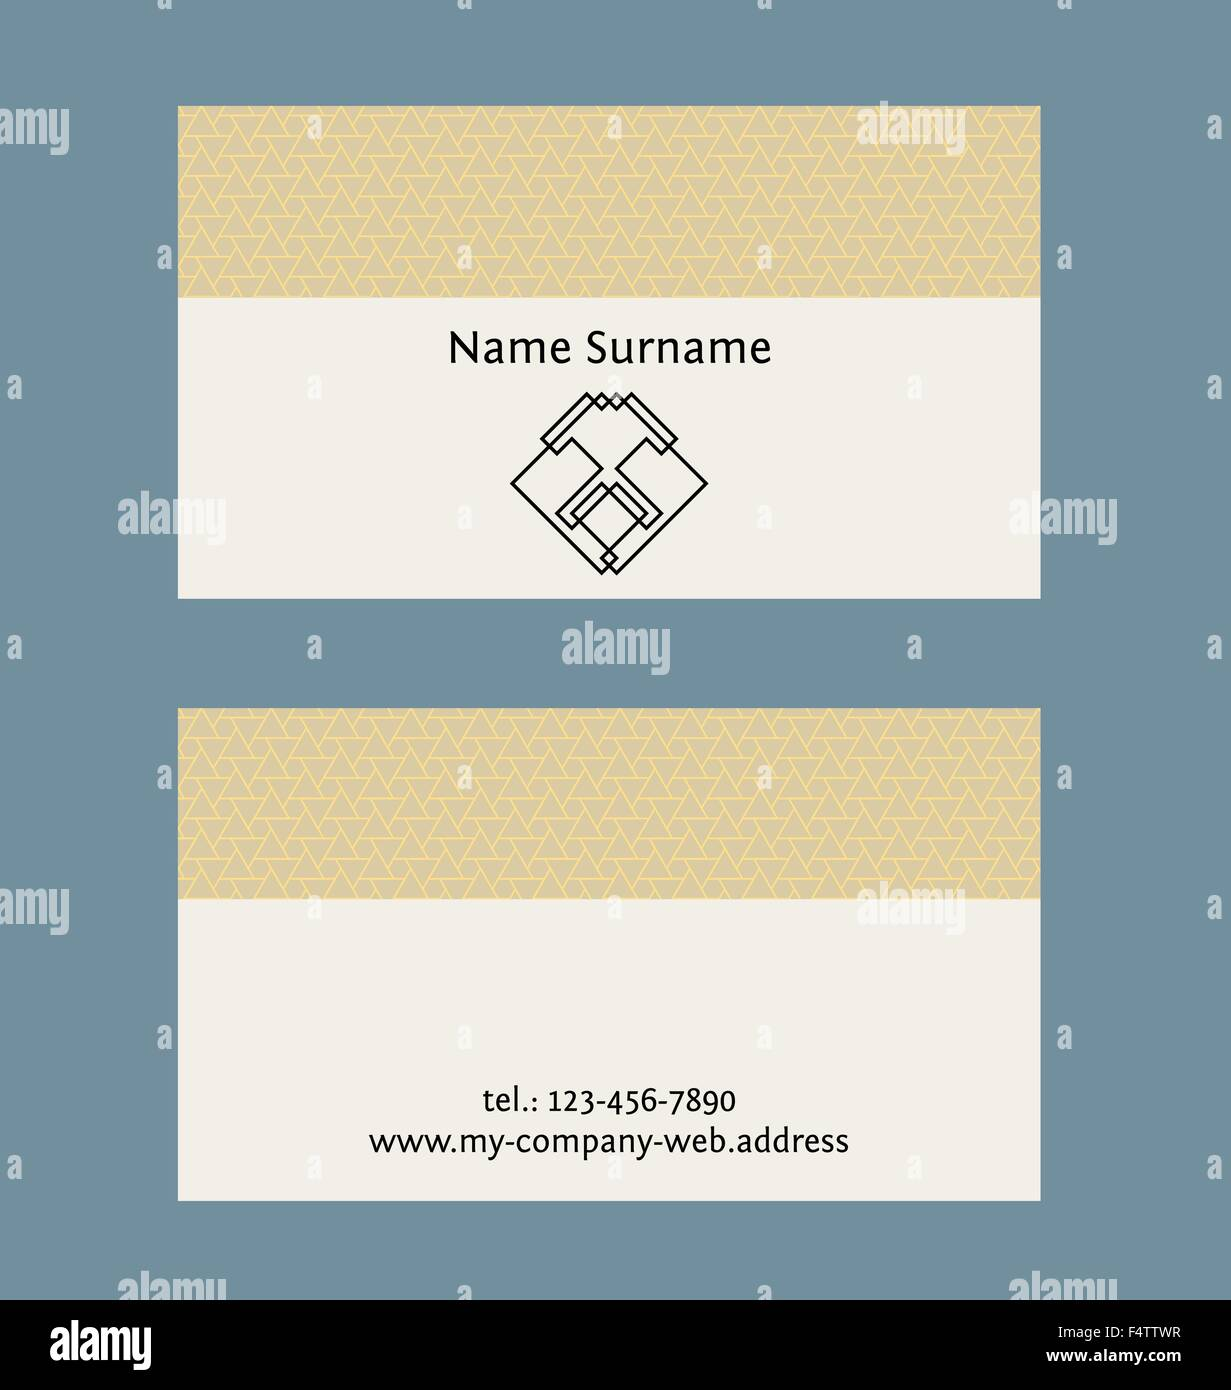 Business card layout linear geometric logo and pattern editable business card layout linear geometric logo and pattern editable design template friedricerecipe Gallery